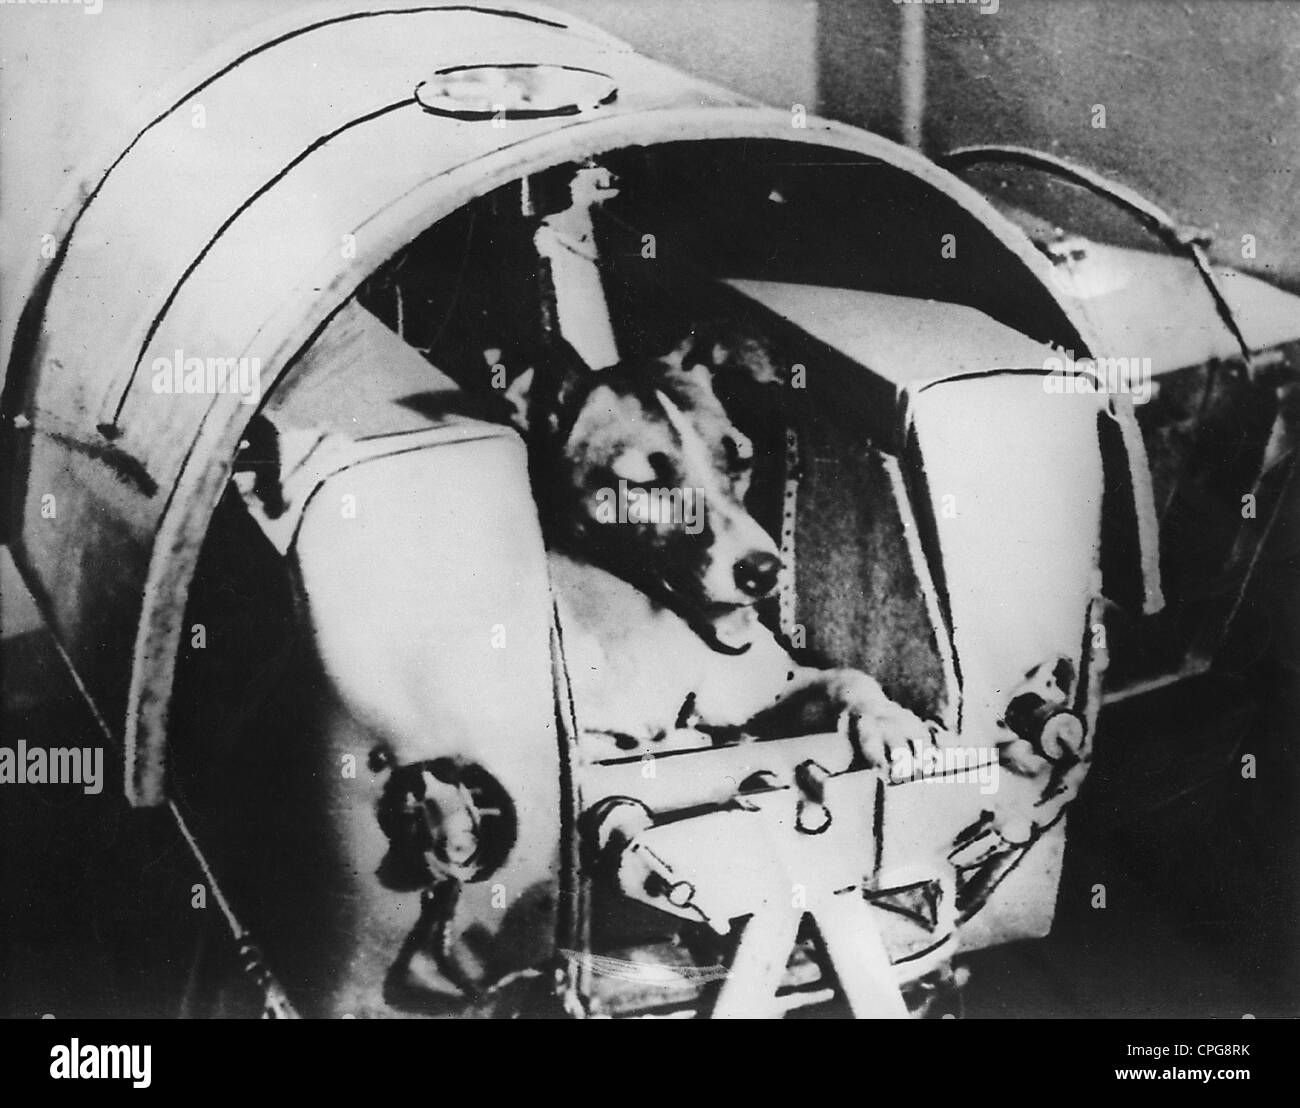 astronautics, animal, USSR, she dog Laica in pressurized cabin of Sputnik II, 1957, Additional-Rights-Clearences - Stock Image